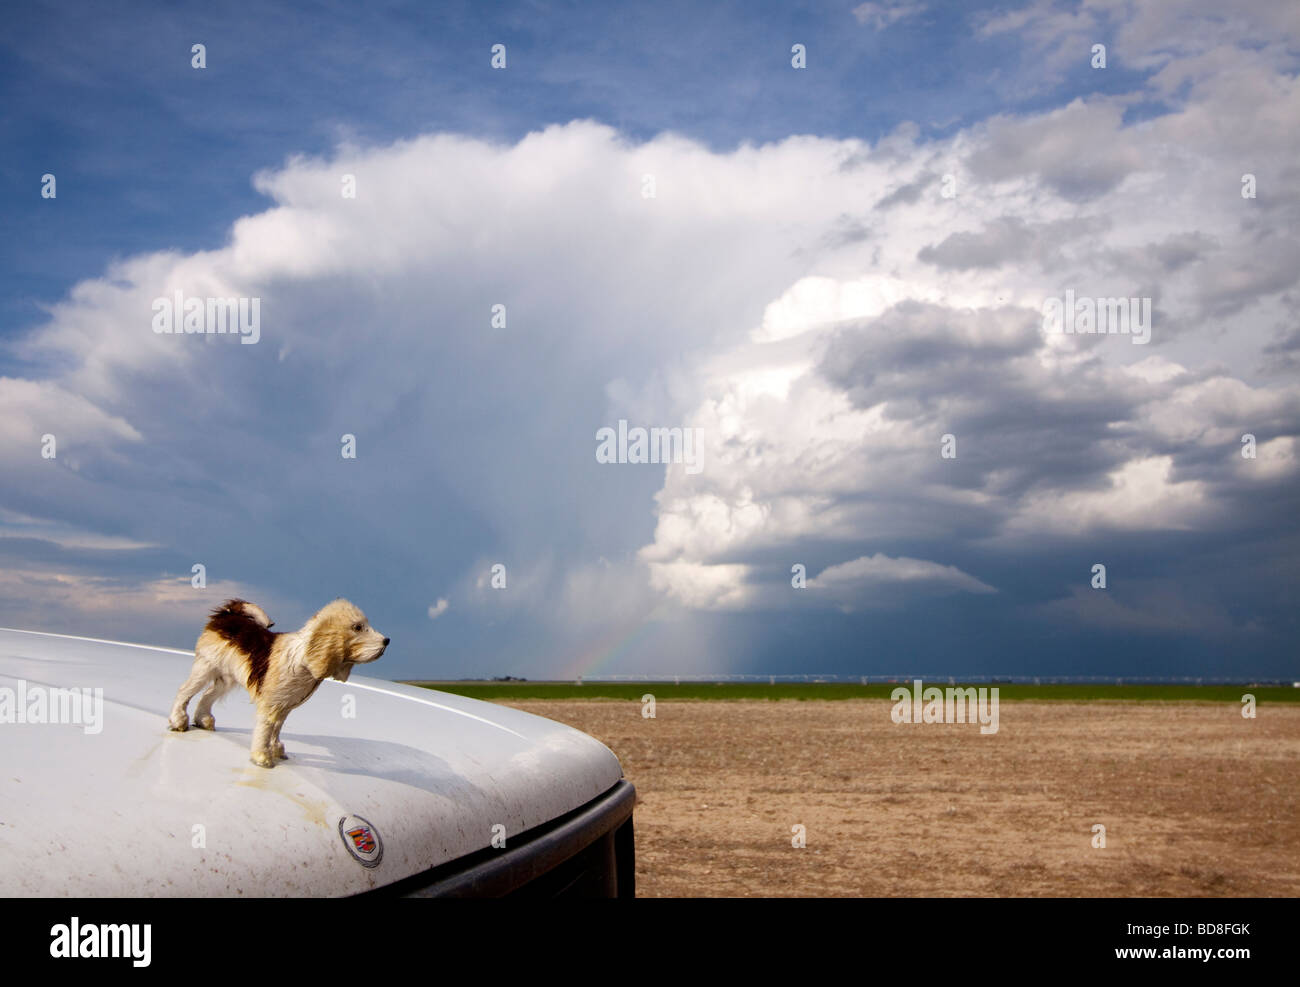 The hood ornament of the Doppler on Wheels Rapidscan truck is parked in front of a thunderstorm in the distance - Stock Image